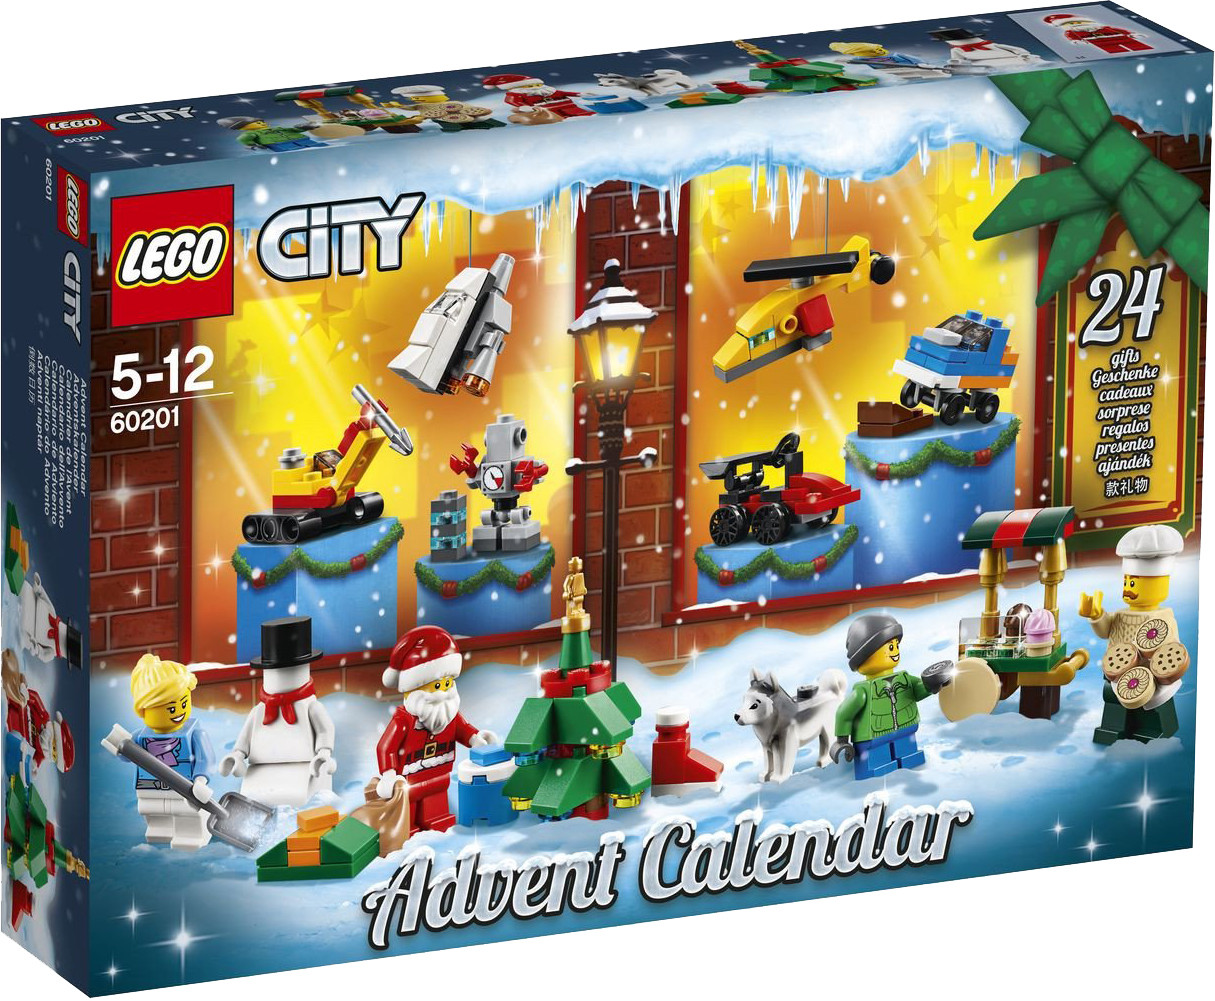 LEGO City advendikalender 2018 (60201)